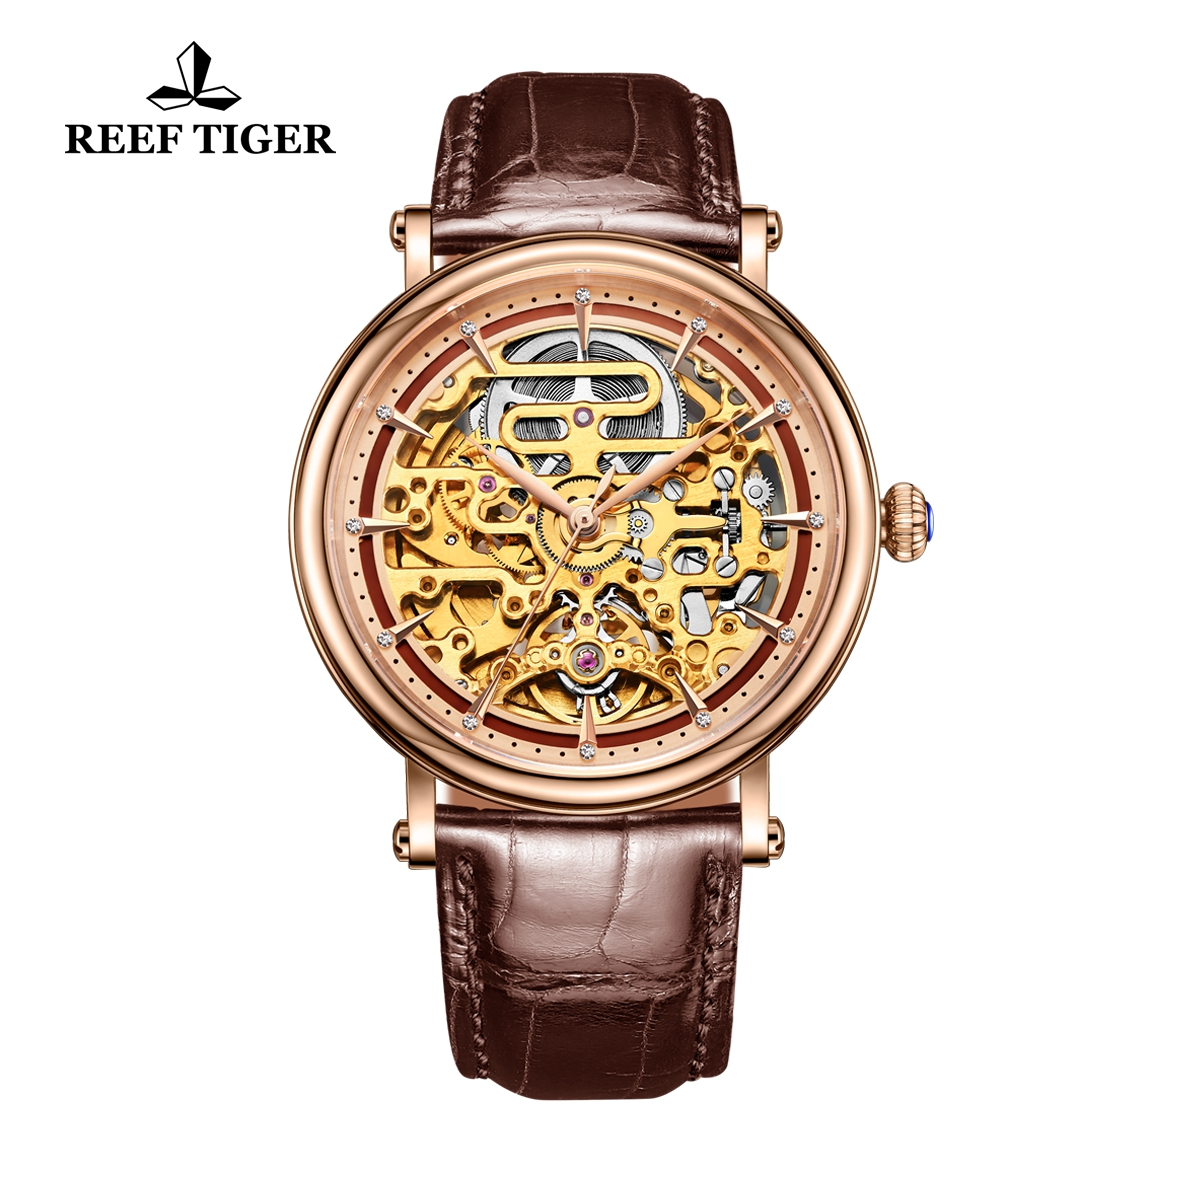 Reef Tiger Casual Watch with Baroque Style Skeleton Dial Rose Gold Case RGA1917-PSB